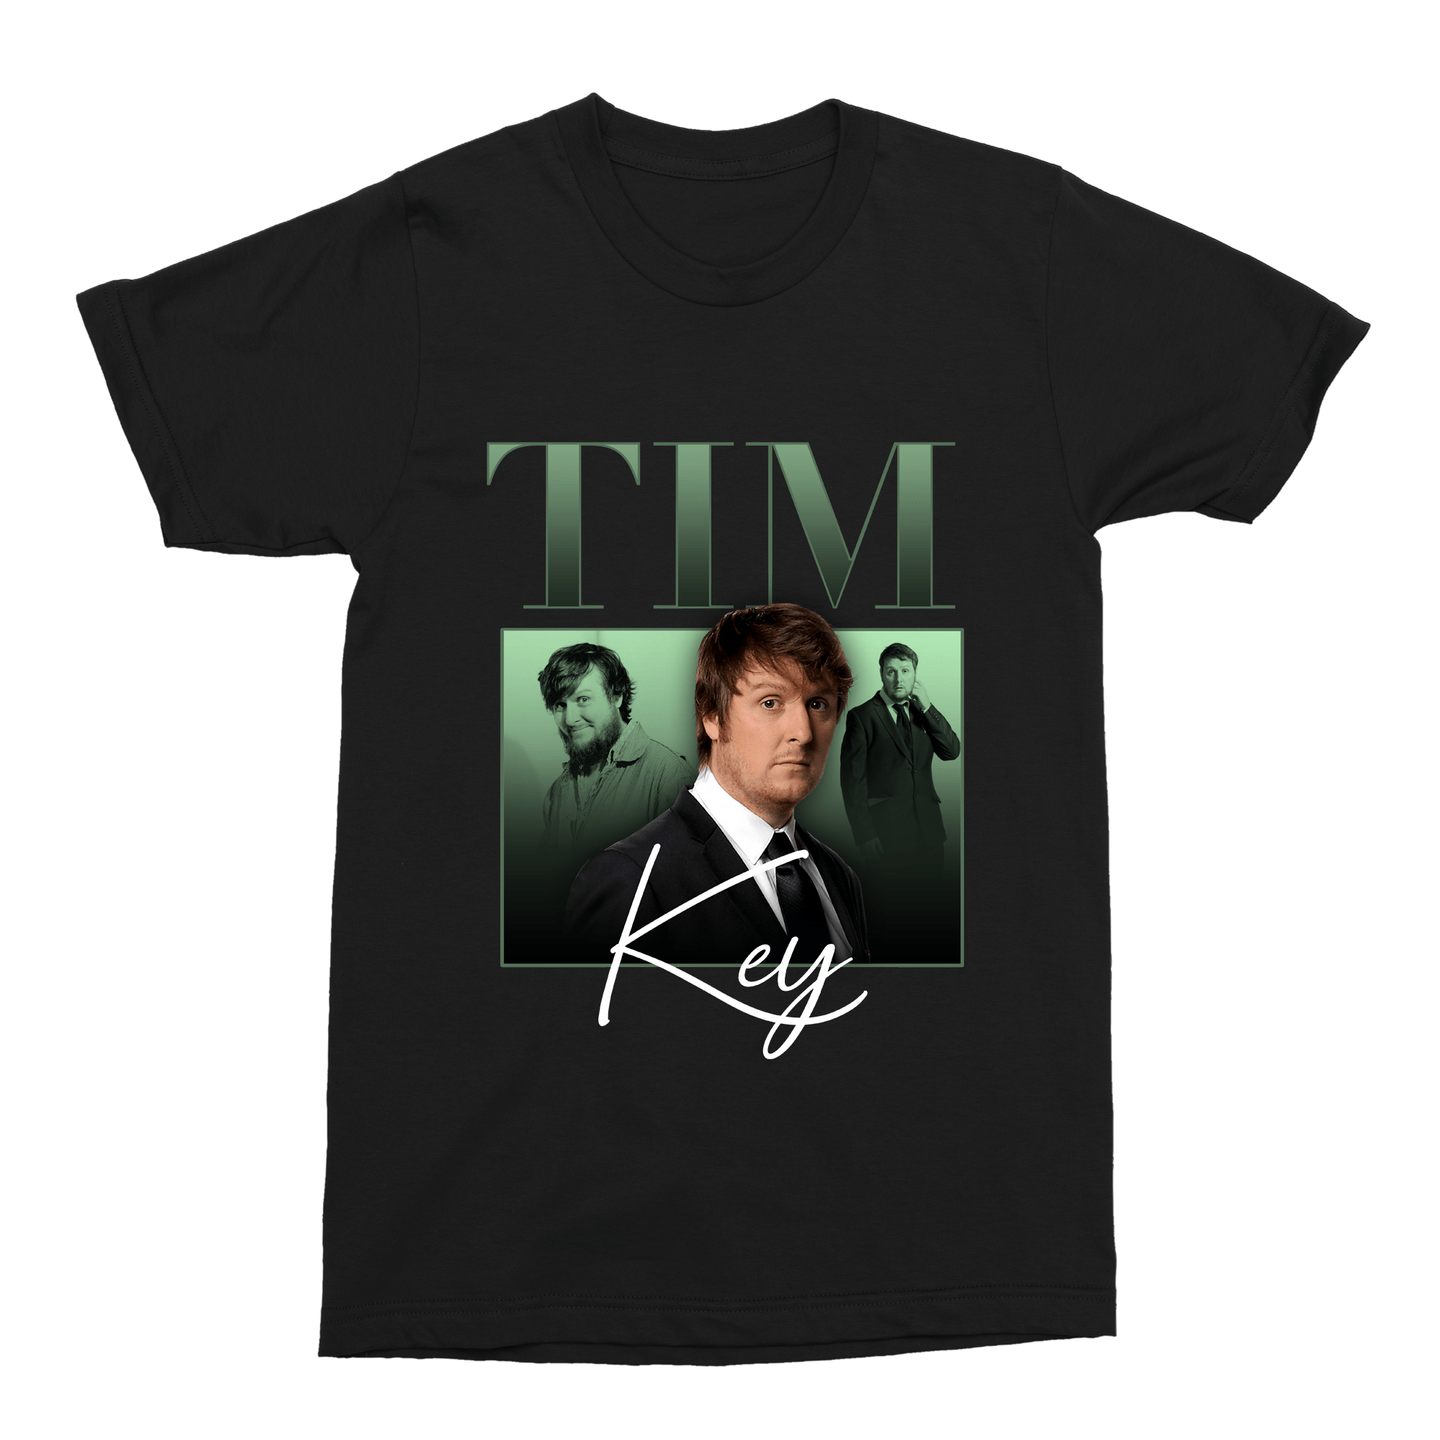 Tim Key Unisex Vintage Throwback T-Shirt - Timeless Tees